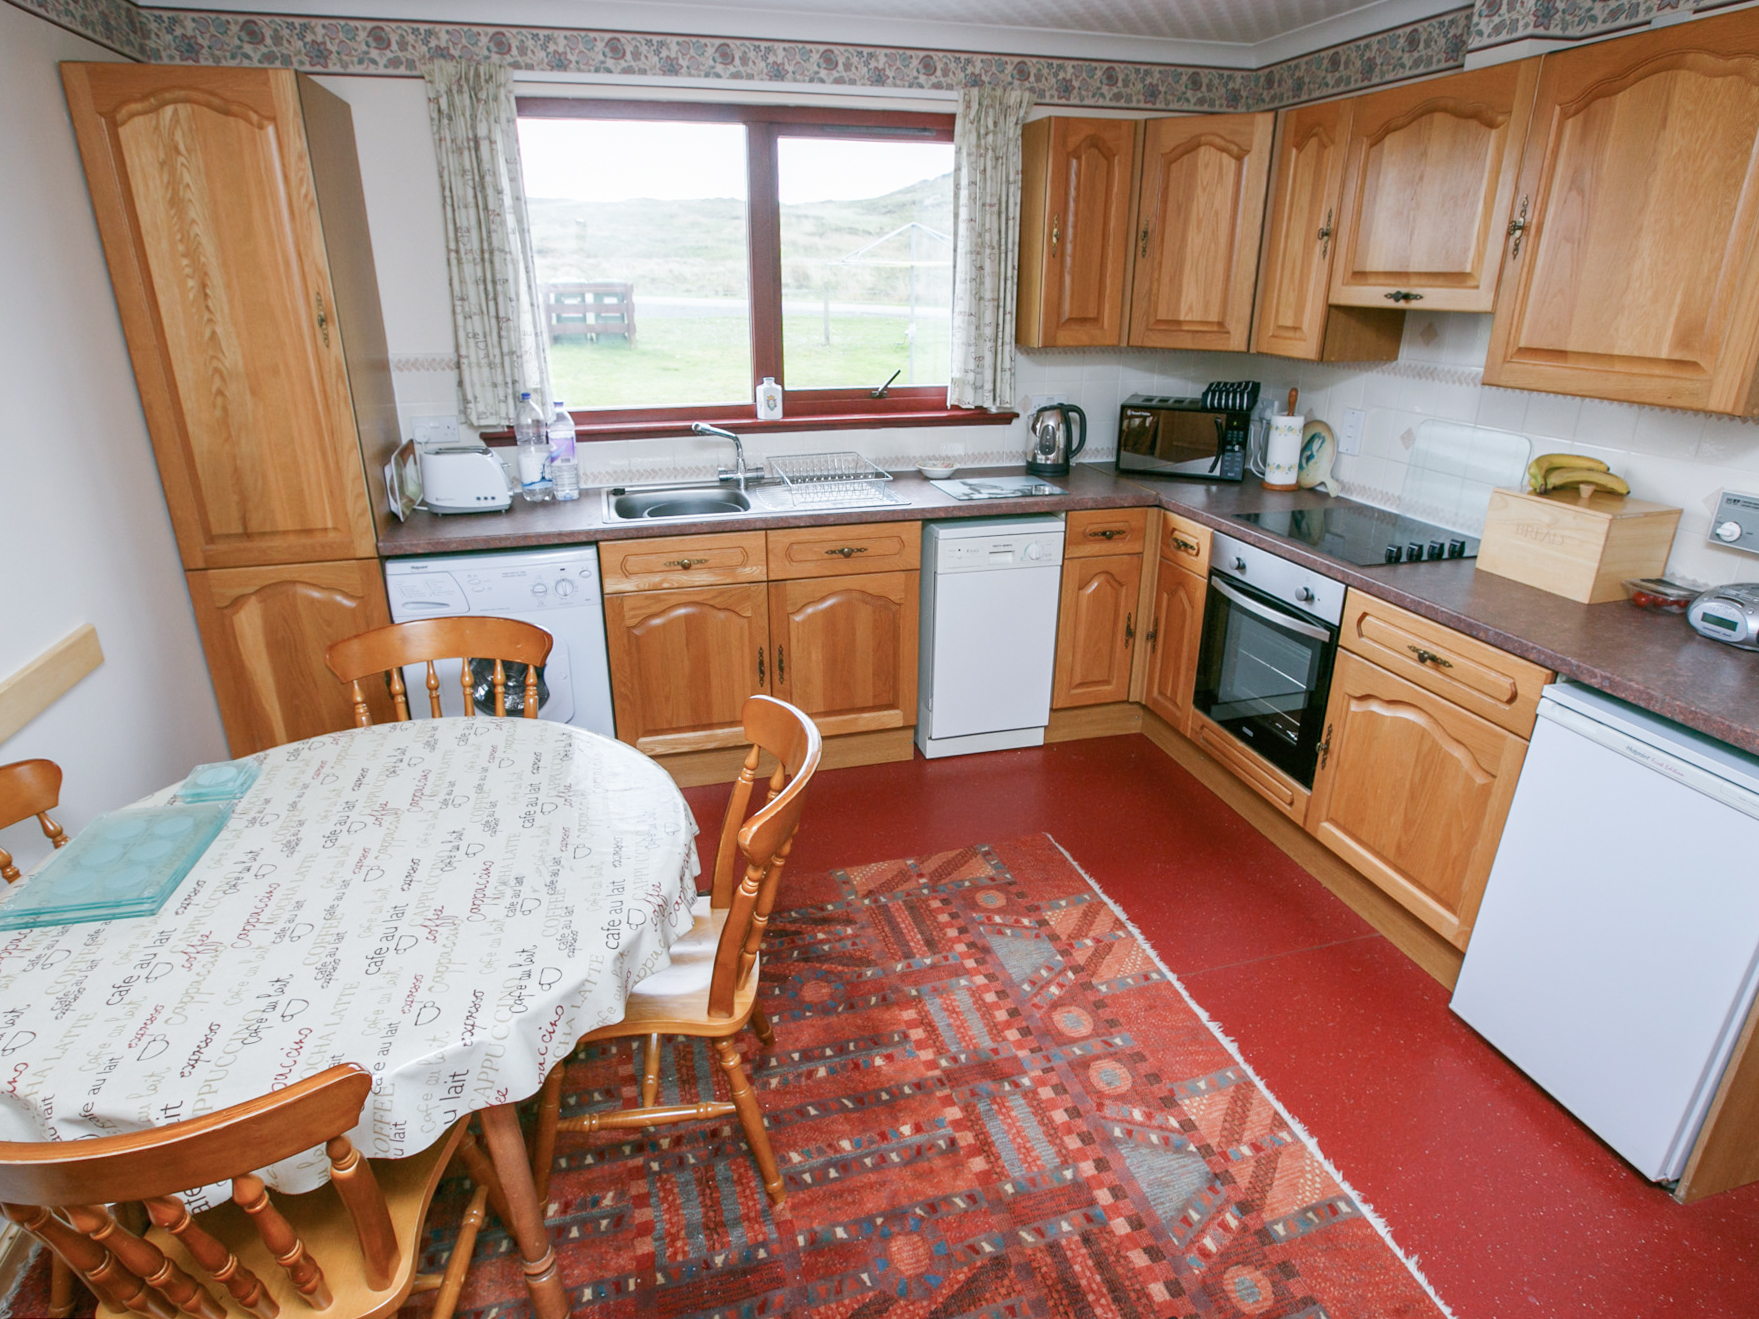 2 BAYVIEW BUNGALOW, Scotland, Scottish Highlands, Ross and Cromarty, Poolewe